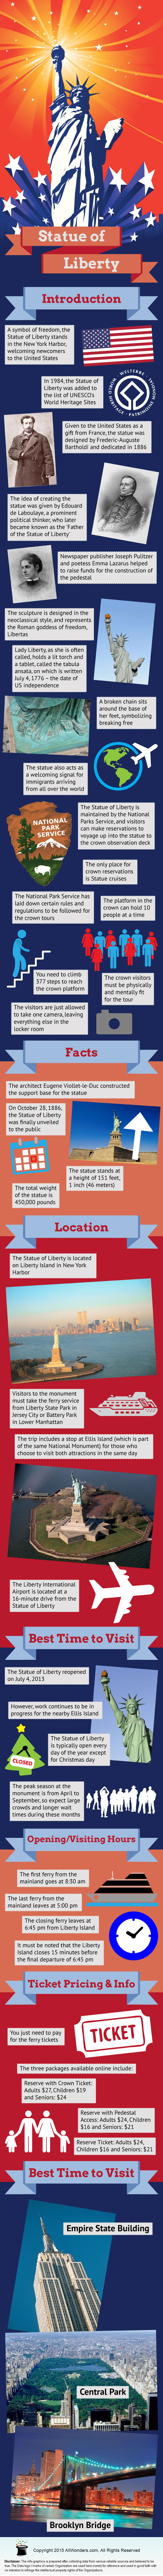 What is Statue of Liberty – All About Statue of Liberty [Infographic]